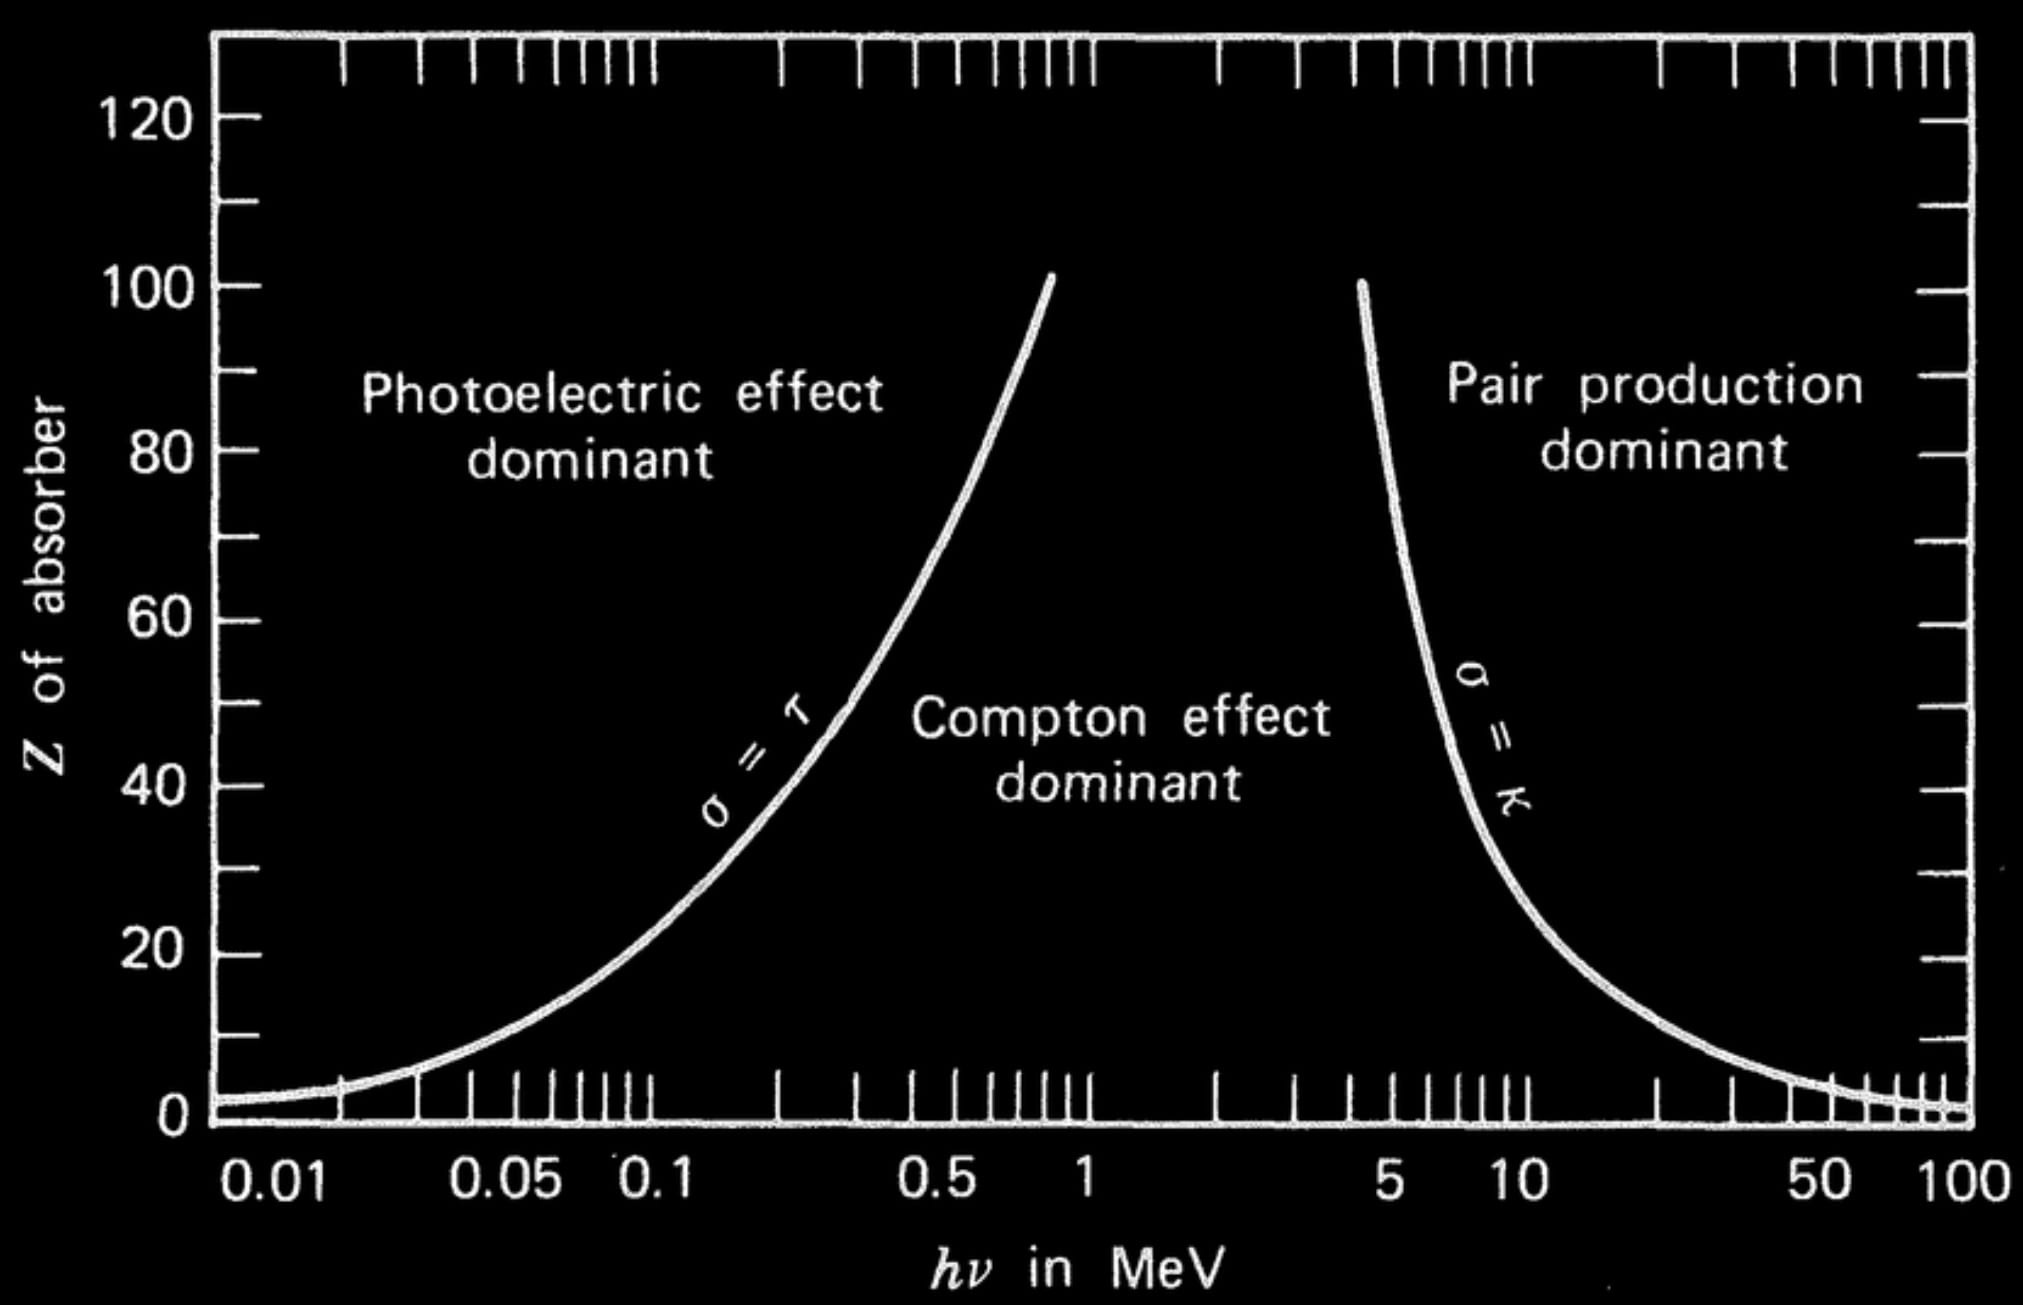 Photons interactions in tissue are primarily Compton for clinical energy ranges.